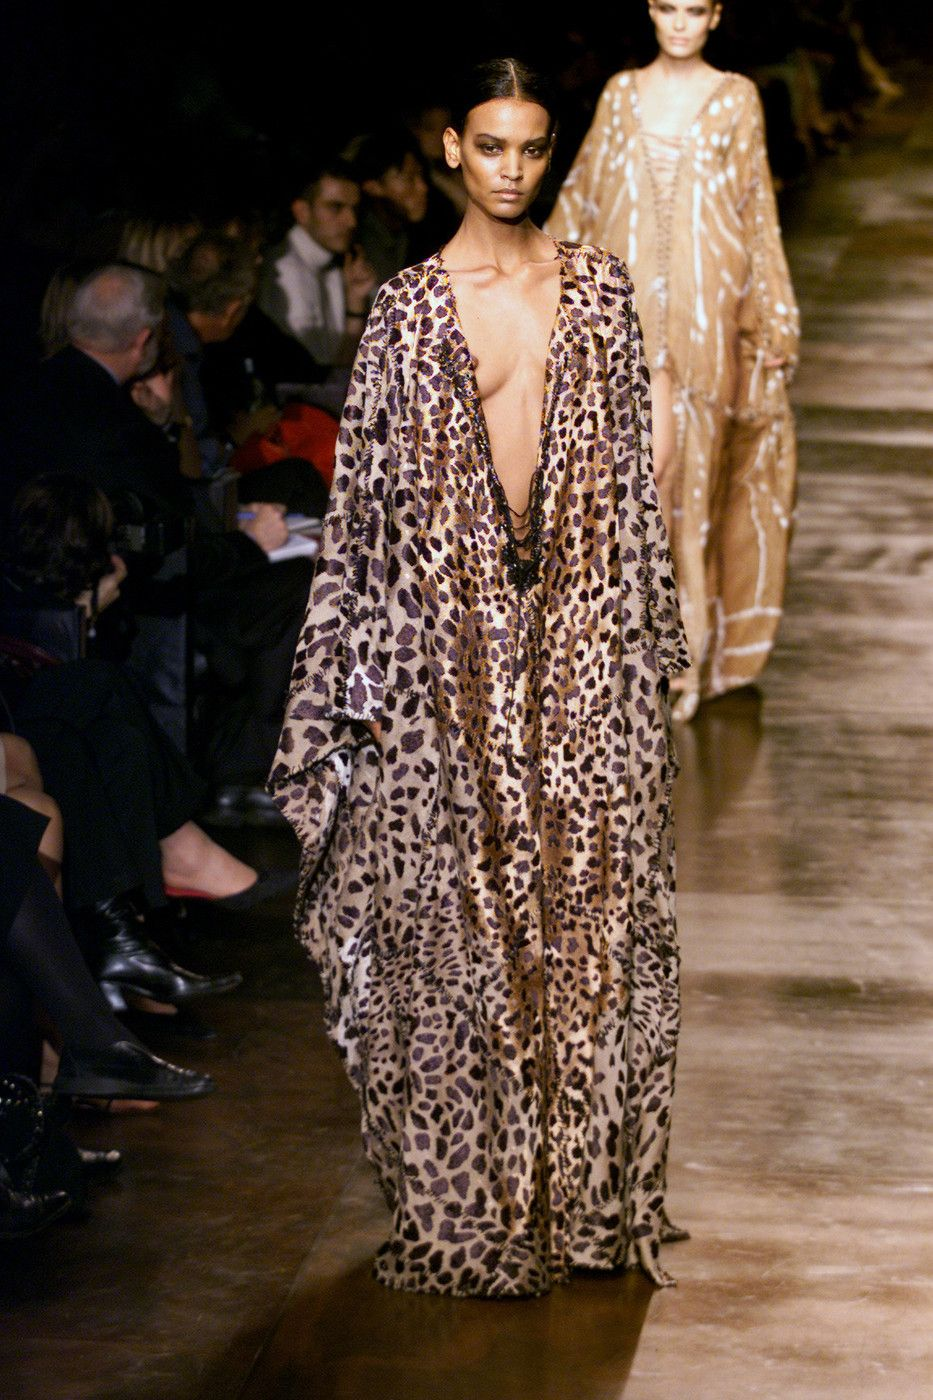 b32387a861c Liya Kebede, Yves Saint Laurent by Tom Ford spring 2002 Ready to Wear.